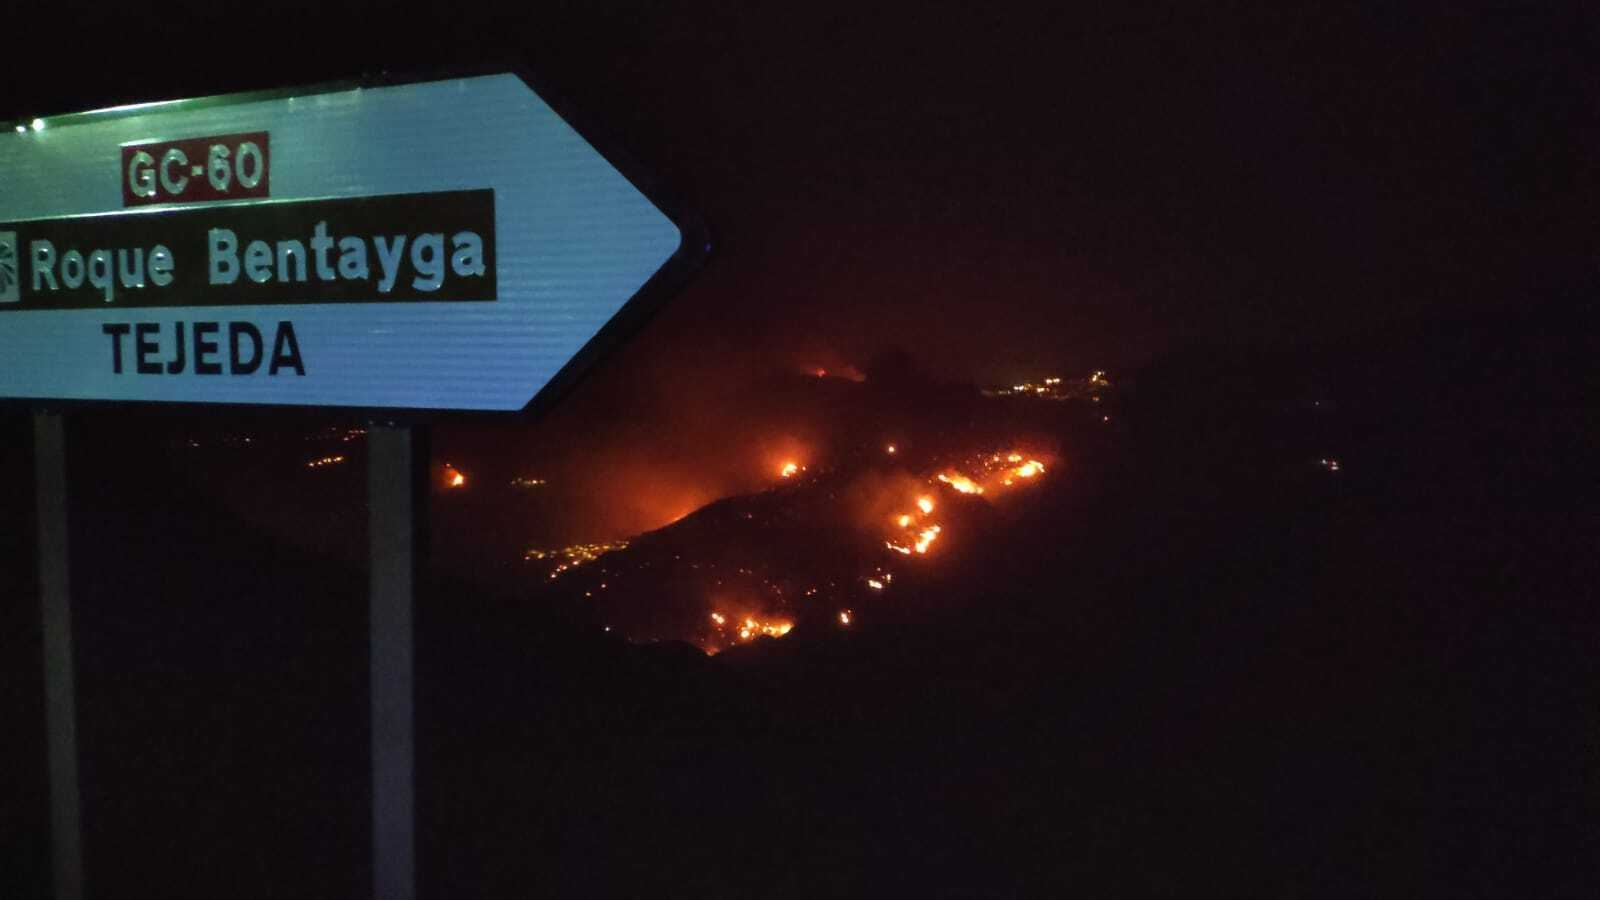 <p>In this photo issued by Cabildo de Gran Canaria, flames from a forest fire burn in Tejada, on the Spanish Gran Canaria island on Tuesday Aug. 20, 2019. The wind dropped overnight in the Canary Islands, allowing firefighters to make progress Tuesday against Spain&#8217;s biggest wildfire so far this year. More than 12,000 hectares (30,000 acres) have been charred on the western slopes of Gran Canaria, an island off northwest Africa. (Cabildo de Gran Canaria Via AP)</p>